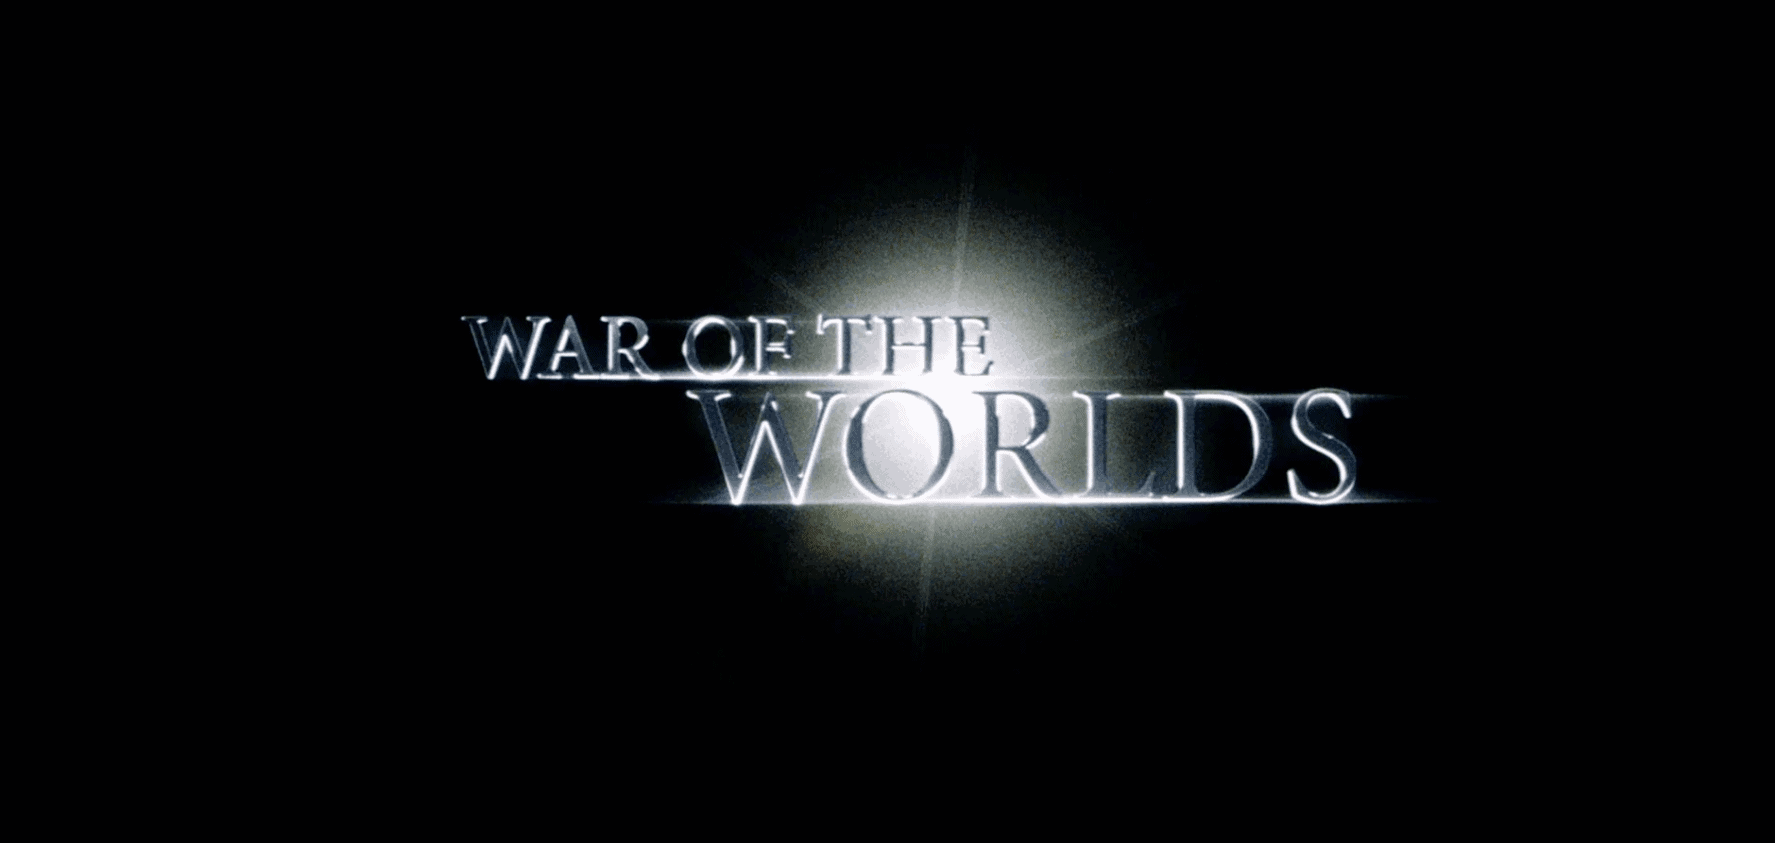 war of the worlds 2004 4k uhd